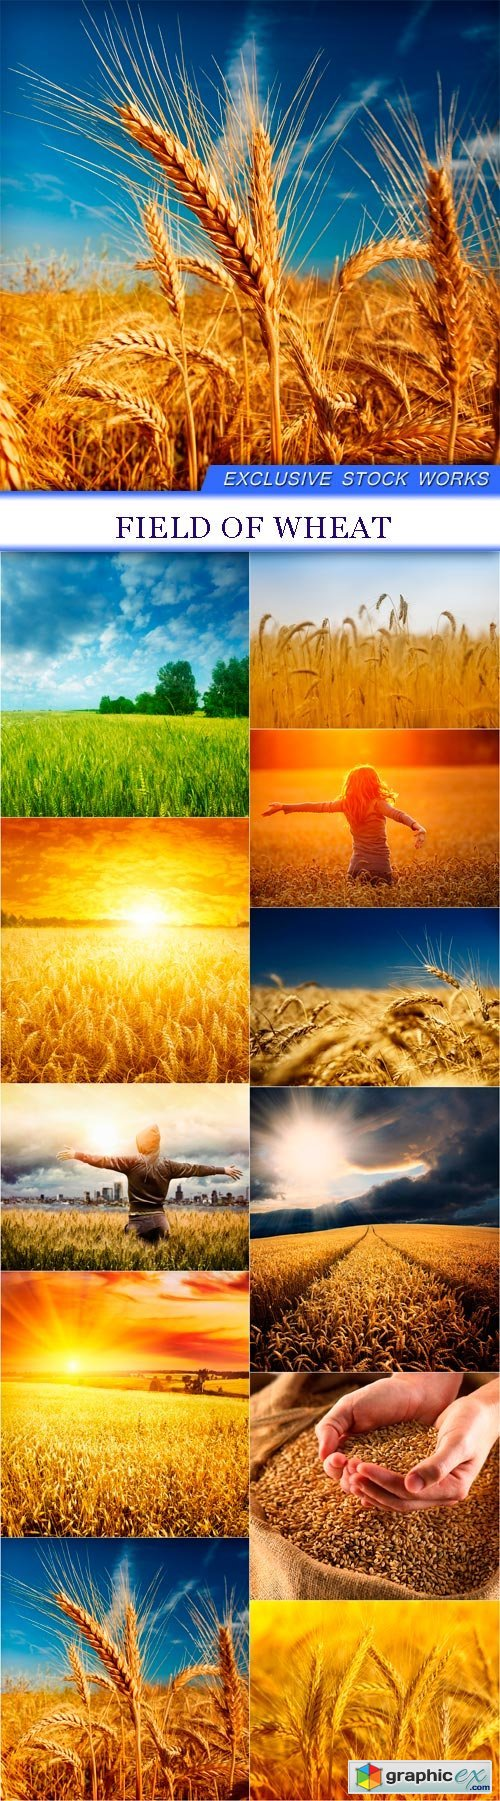 Field of wheat 11X JPEG